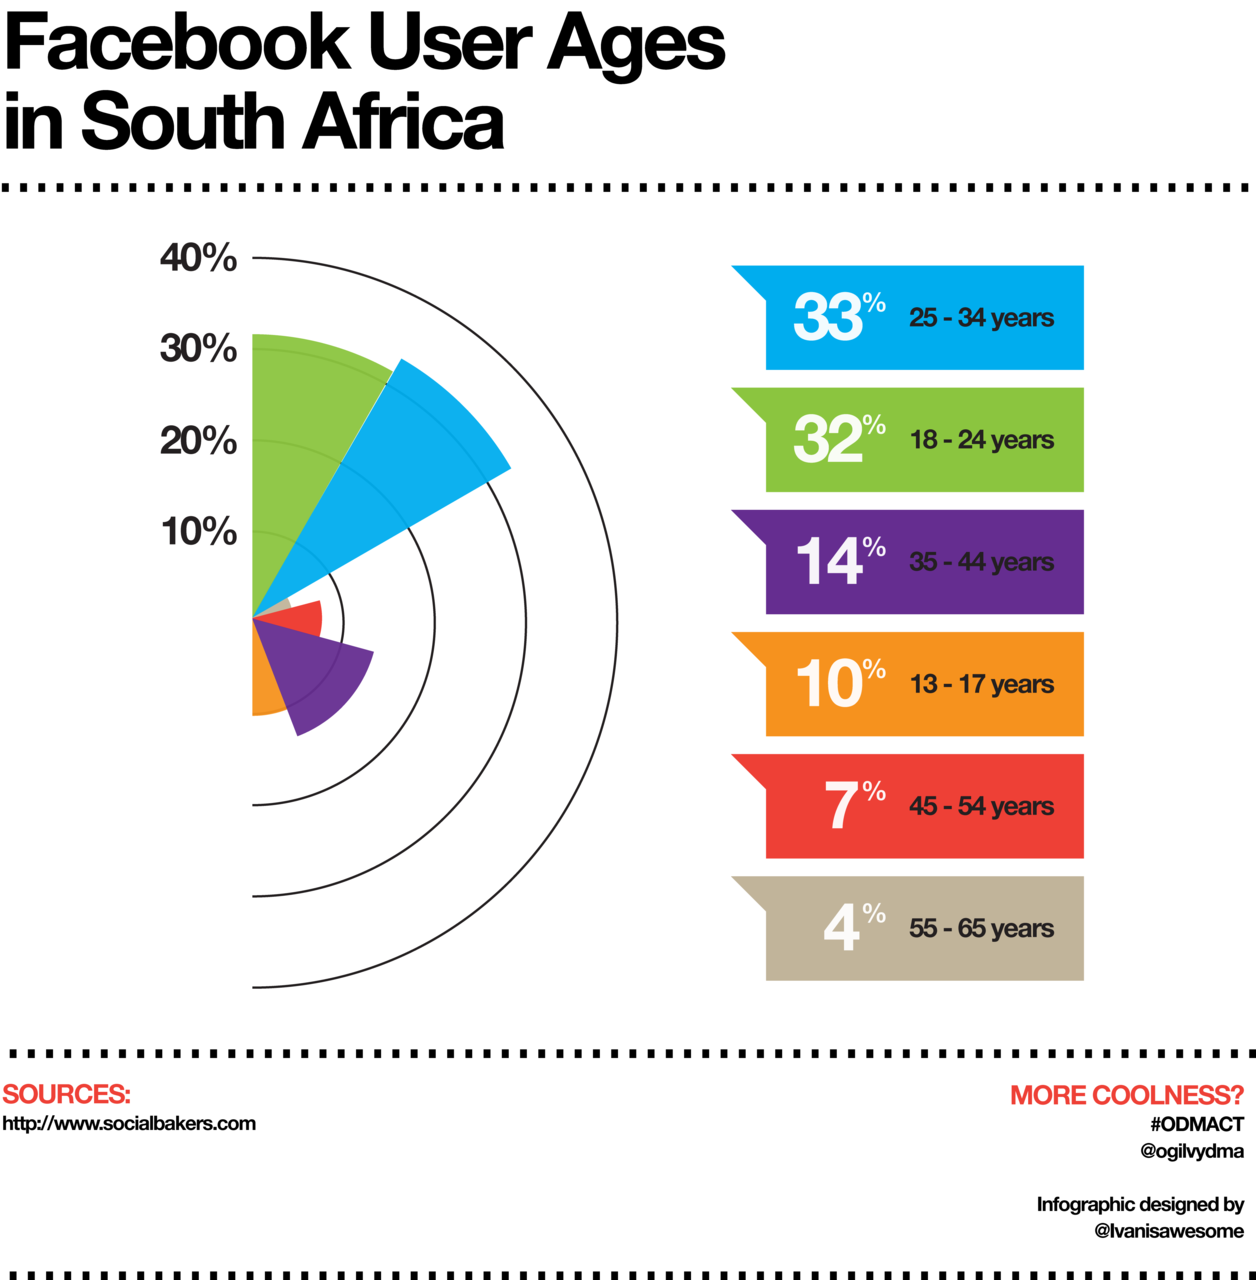 Infographic displaying the various age groups of South African Facebook users.